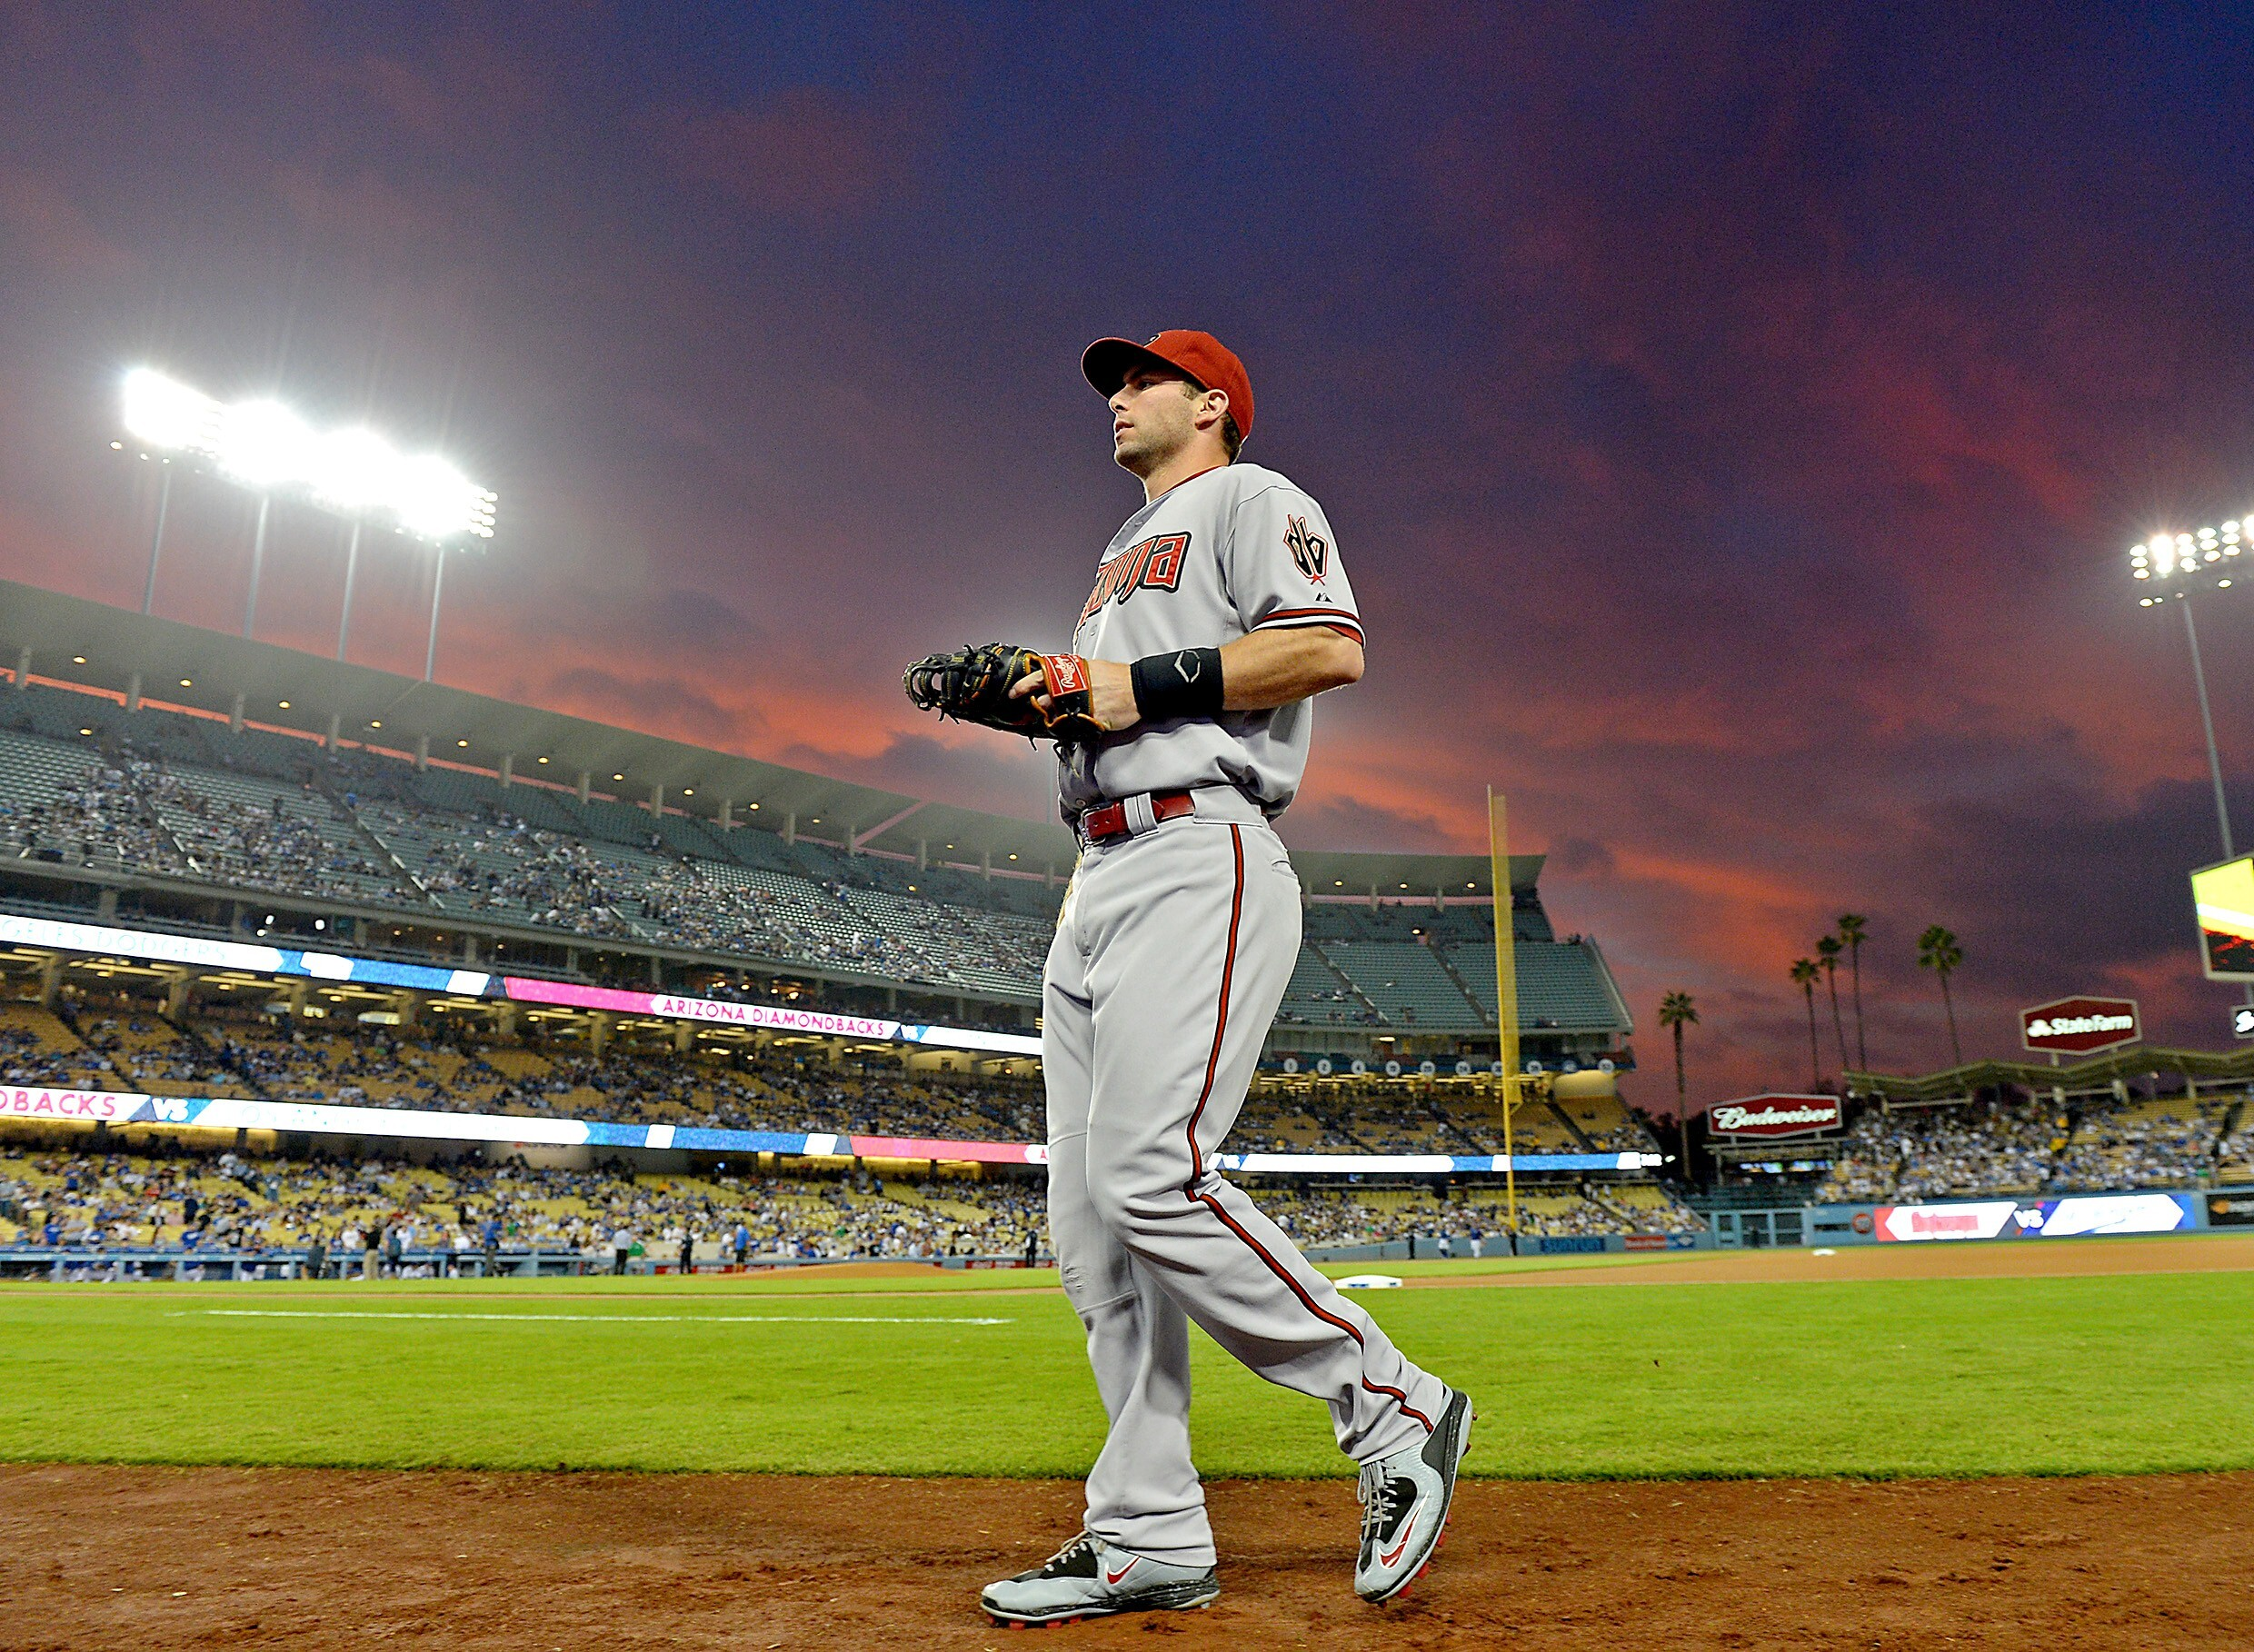 Formal Guide To On the web Sports Betting Paul_Goldschmidt_in_Baseball_Ground_Photo